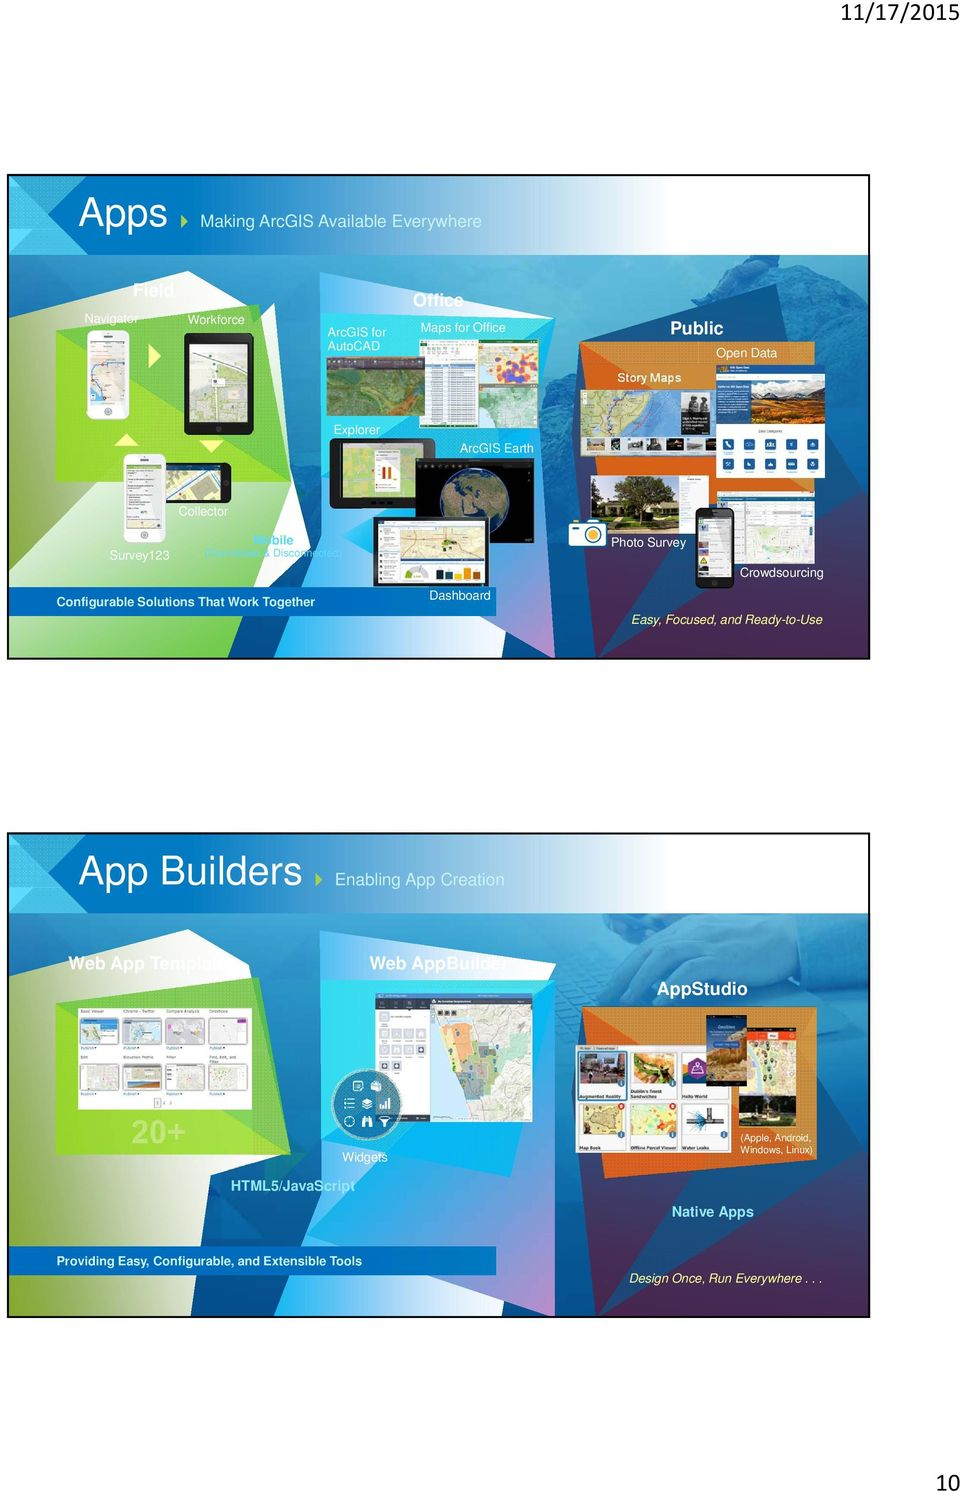 Survey Crowdsourcing Easy, Focused, and Ready-to-Use App Builders Enabling App Creation Web App Templates Web AppBuilder AppStudio Widgets